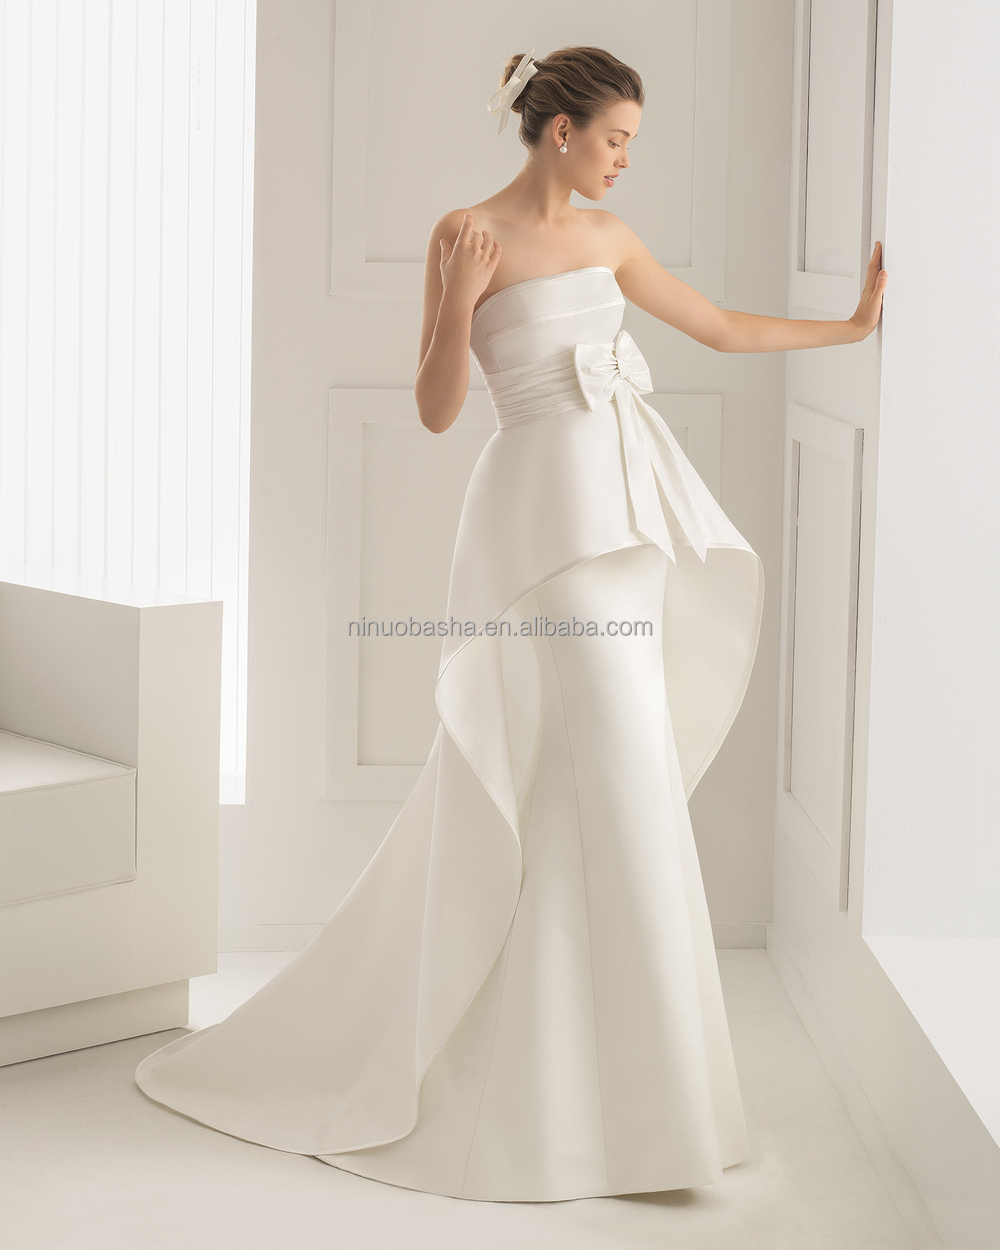 2015 unique silk satin wedding dress and detachable train for Satin silk wedding dresses